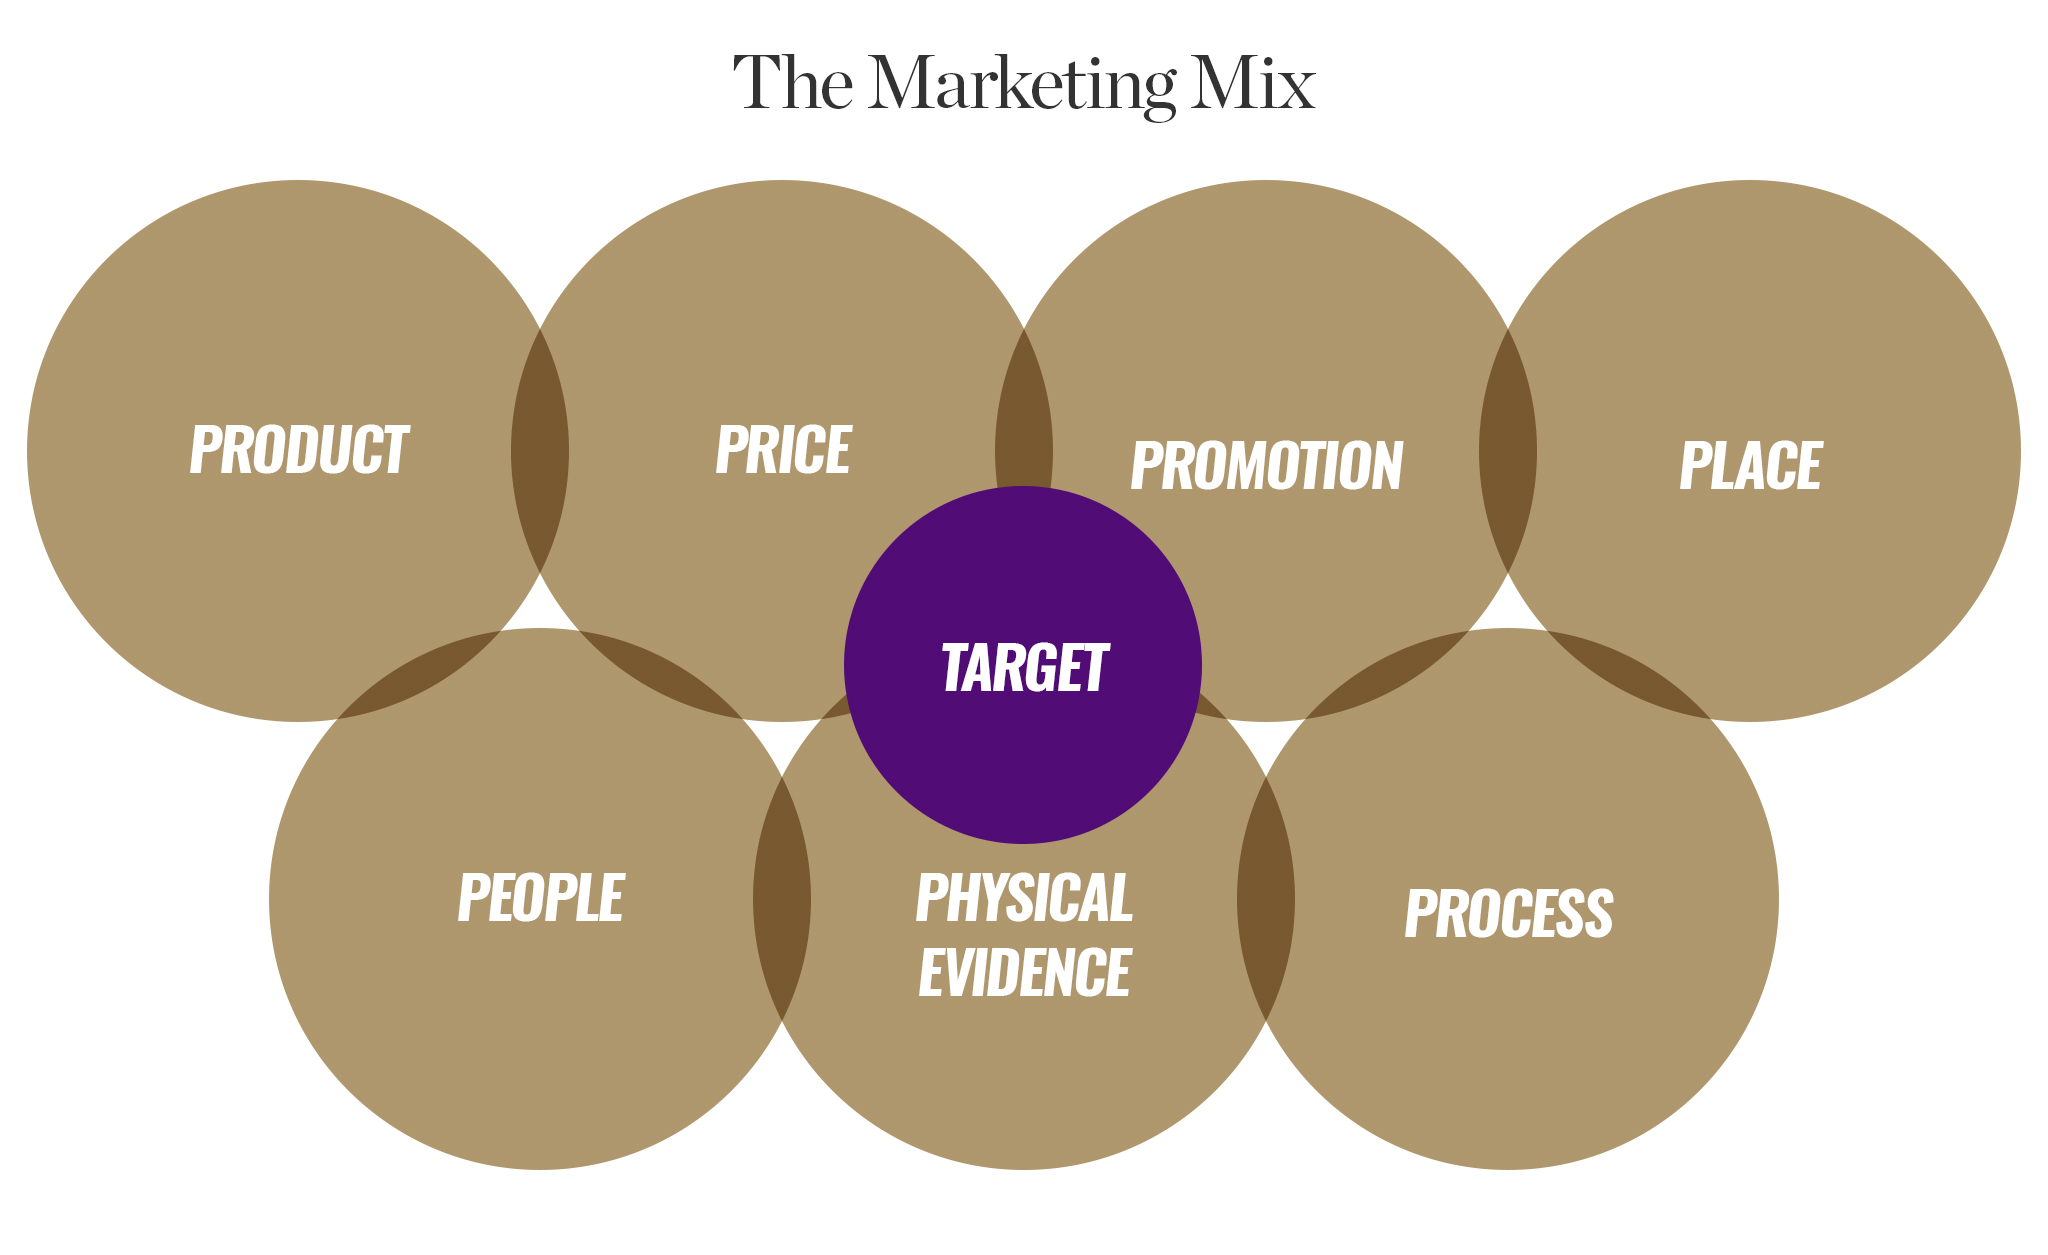 Marketing Mix: The Four Ps of Marketing